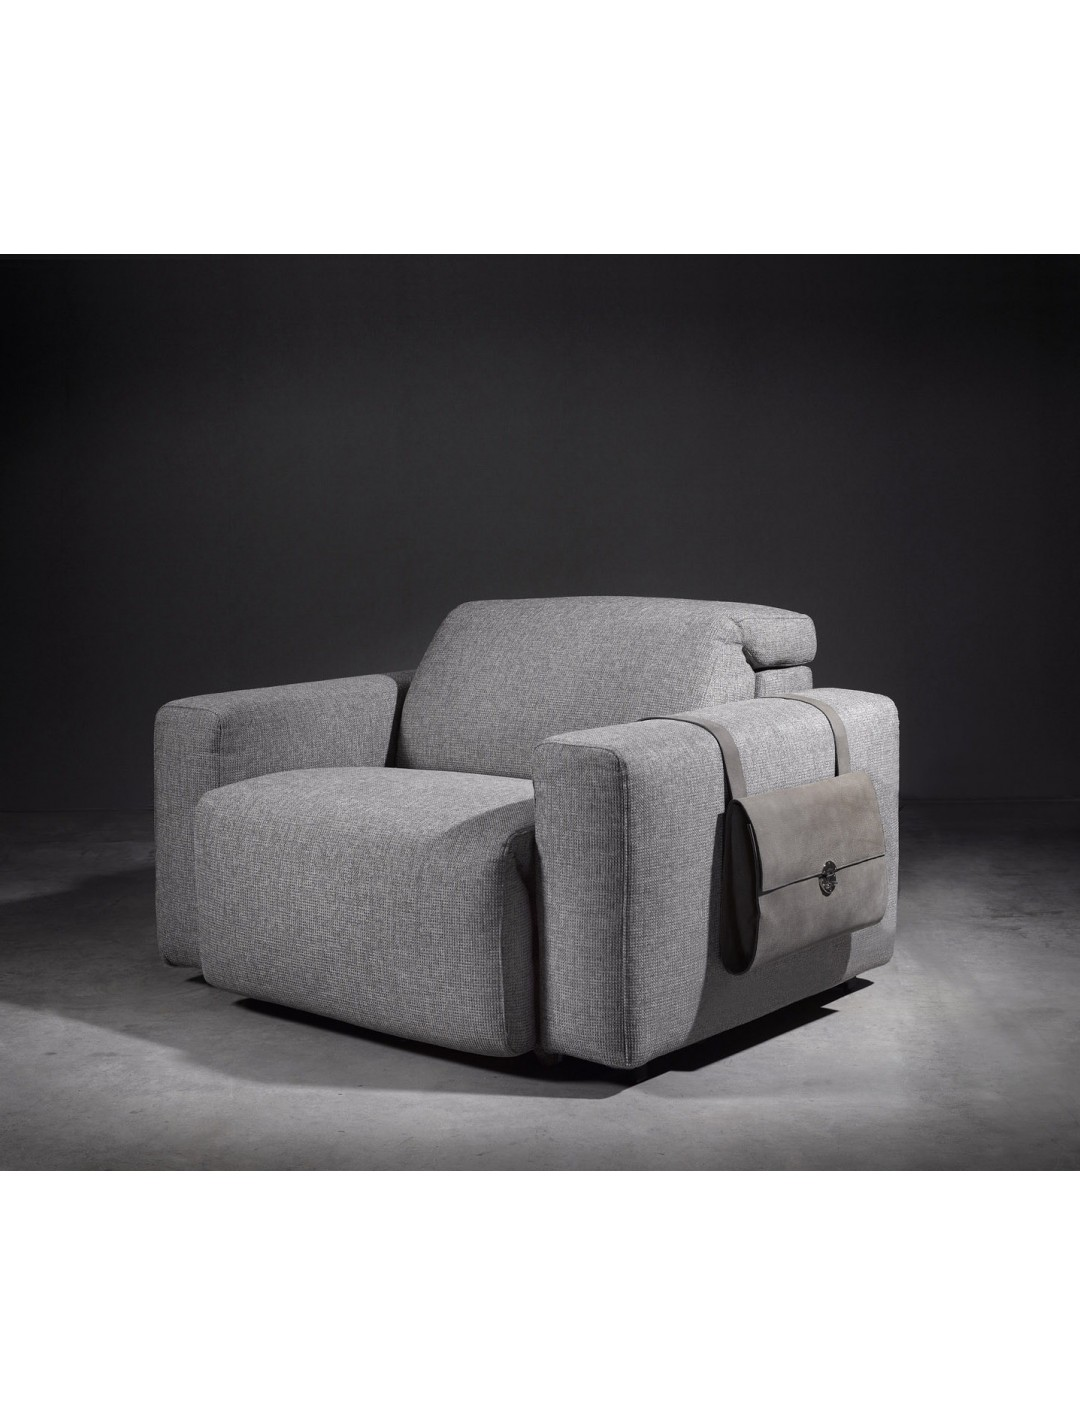 Cosmopol One Seat Sofa 2 Arms Upholstery Without Fabric